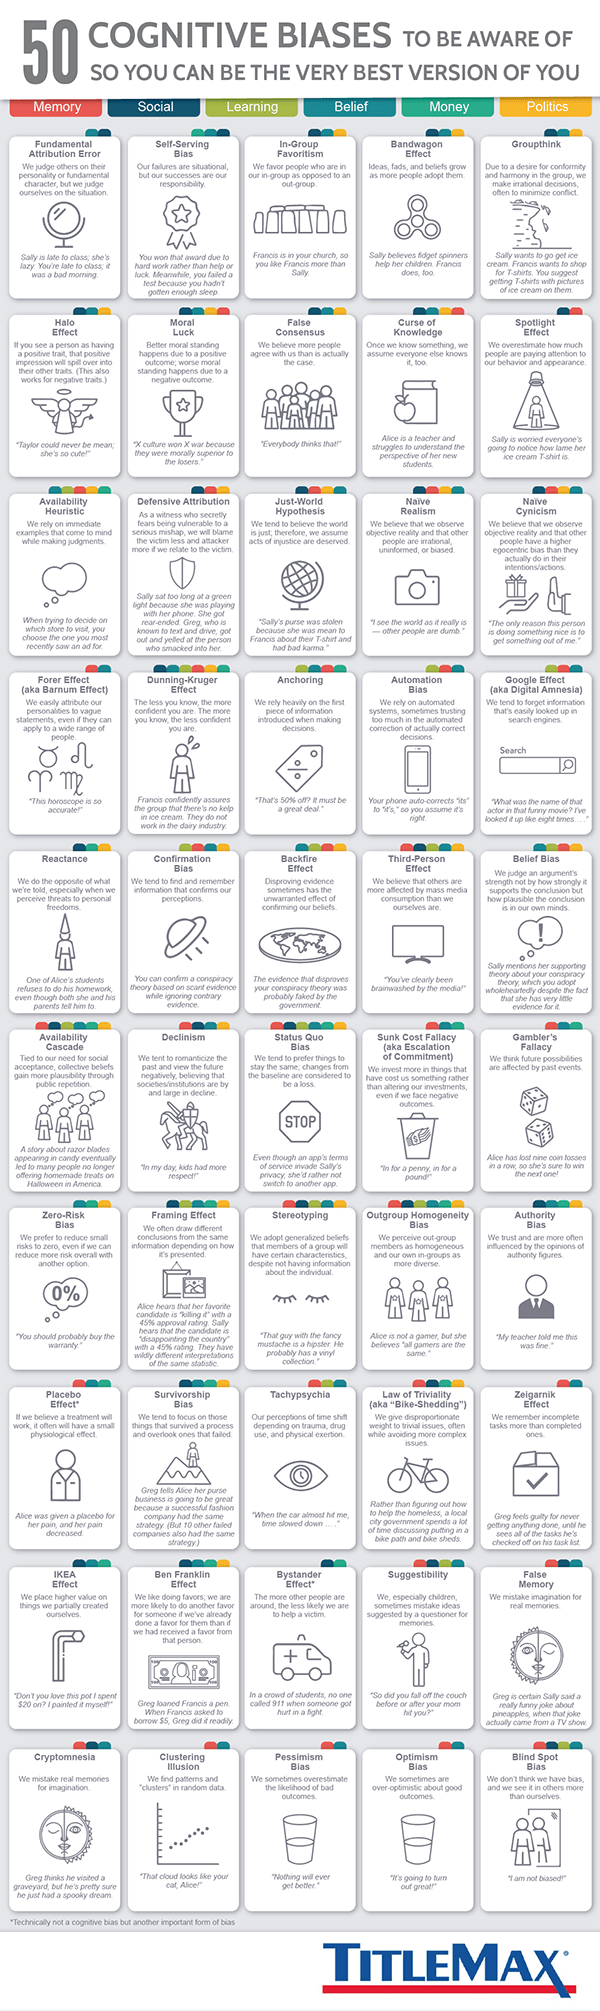 Be Aware Of These 50 Subjective Realities Created By You - Infographic